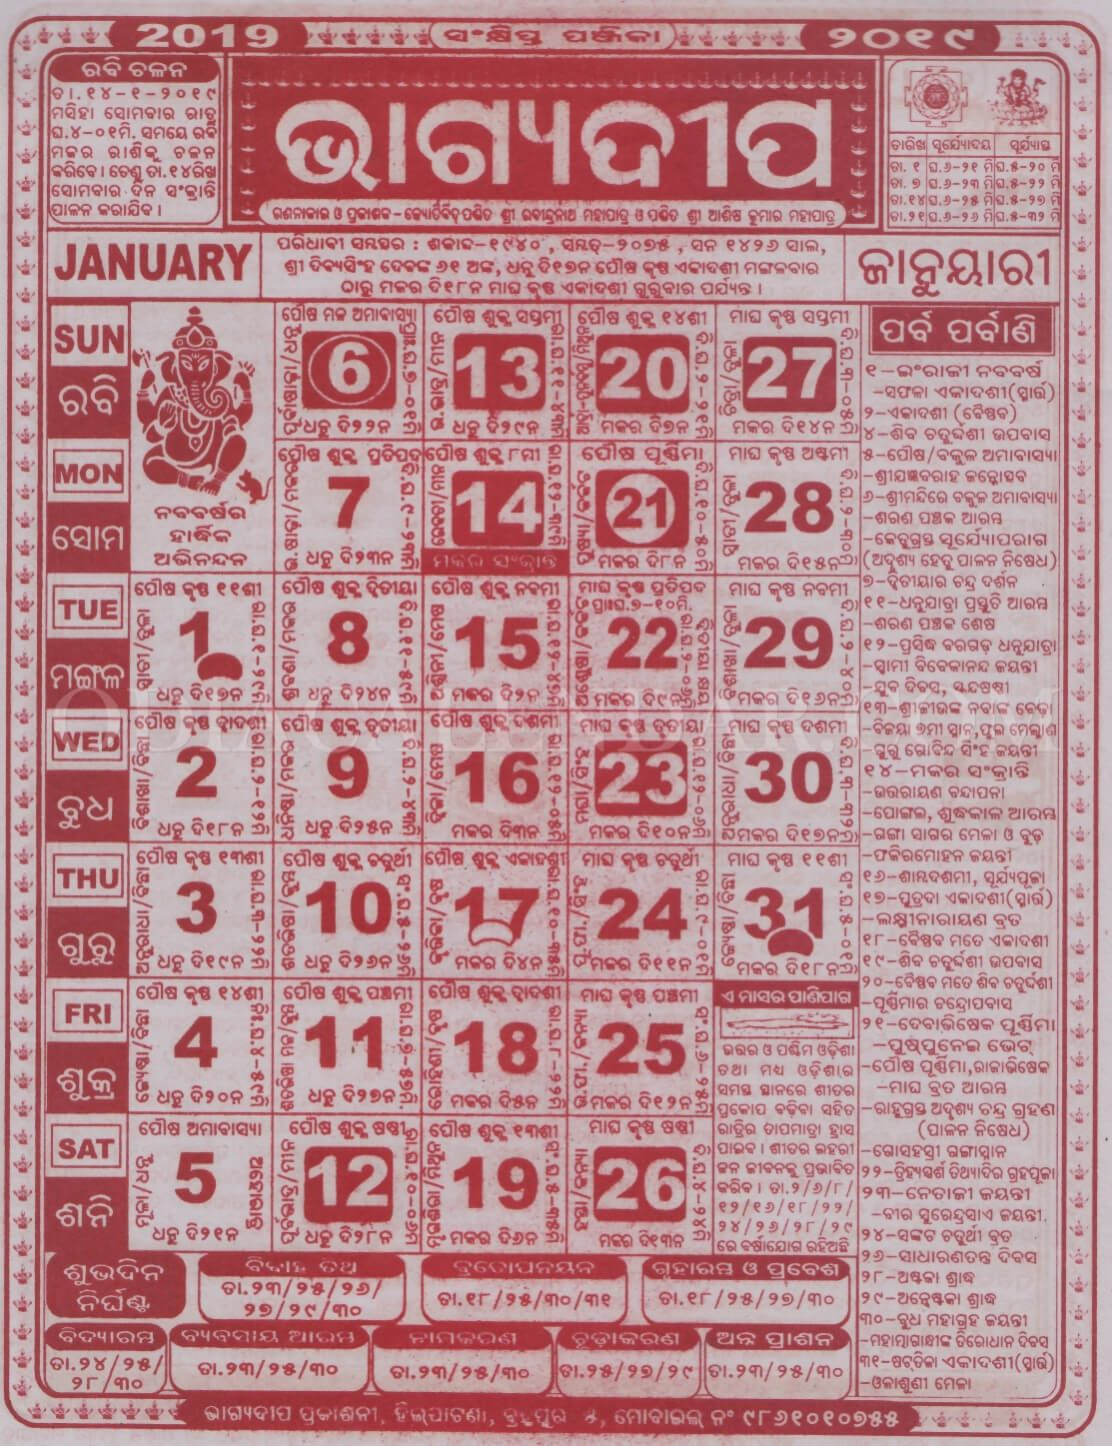 Bhagyadeep Calendar January 2019 | Calendar, Free, High pertaining to Oriya Calendar 2020 February